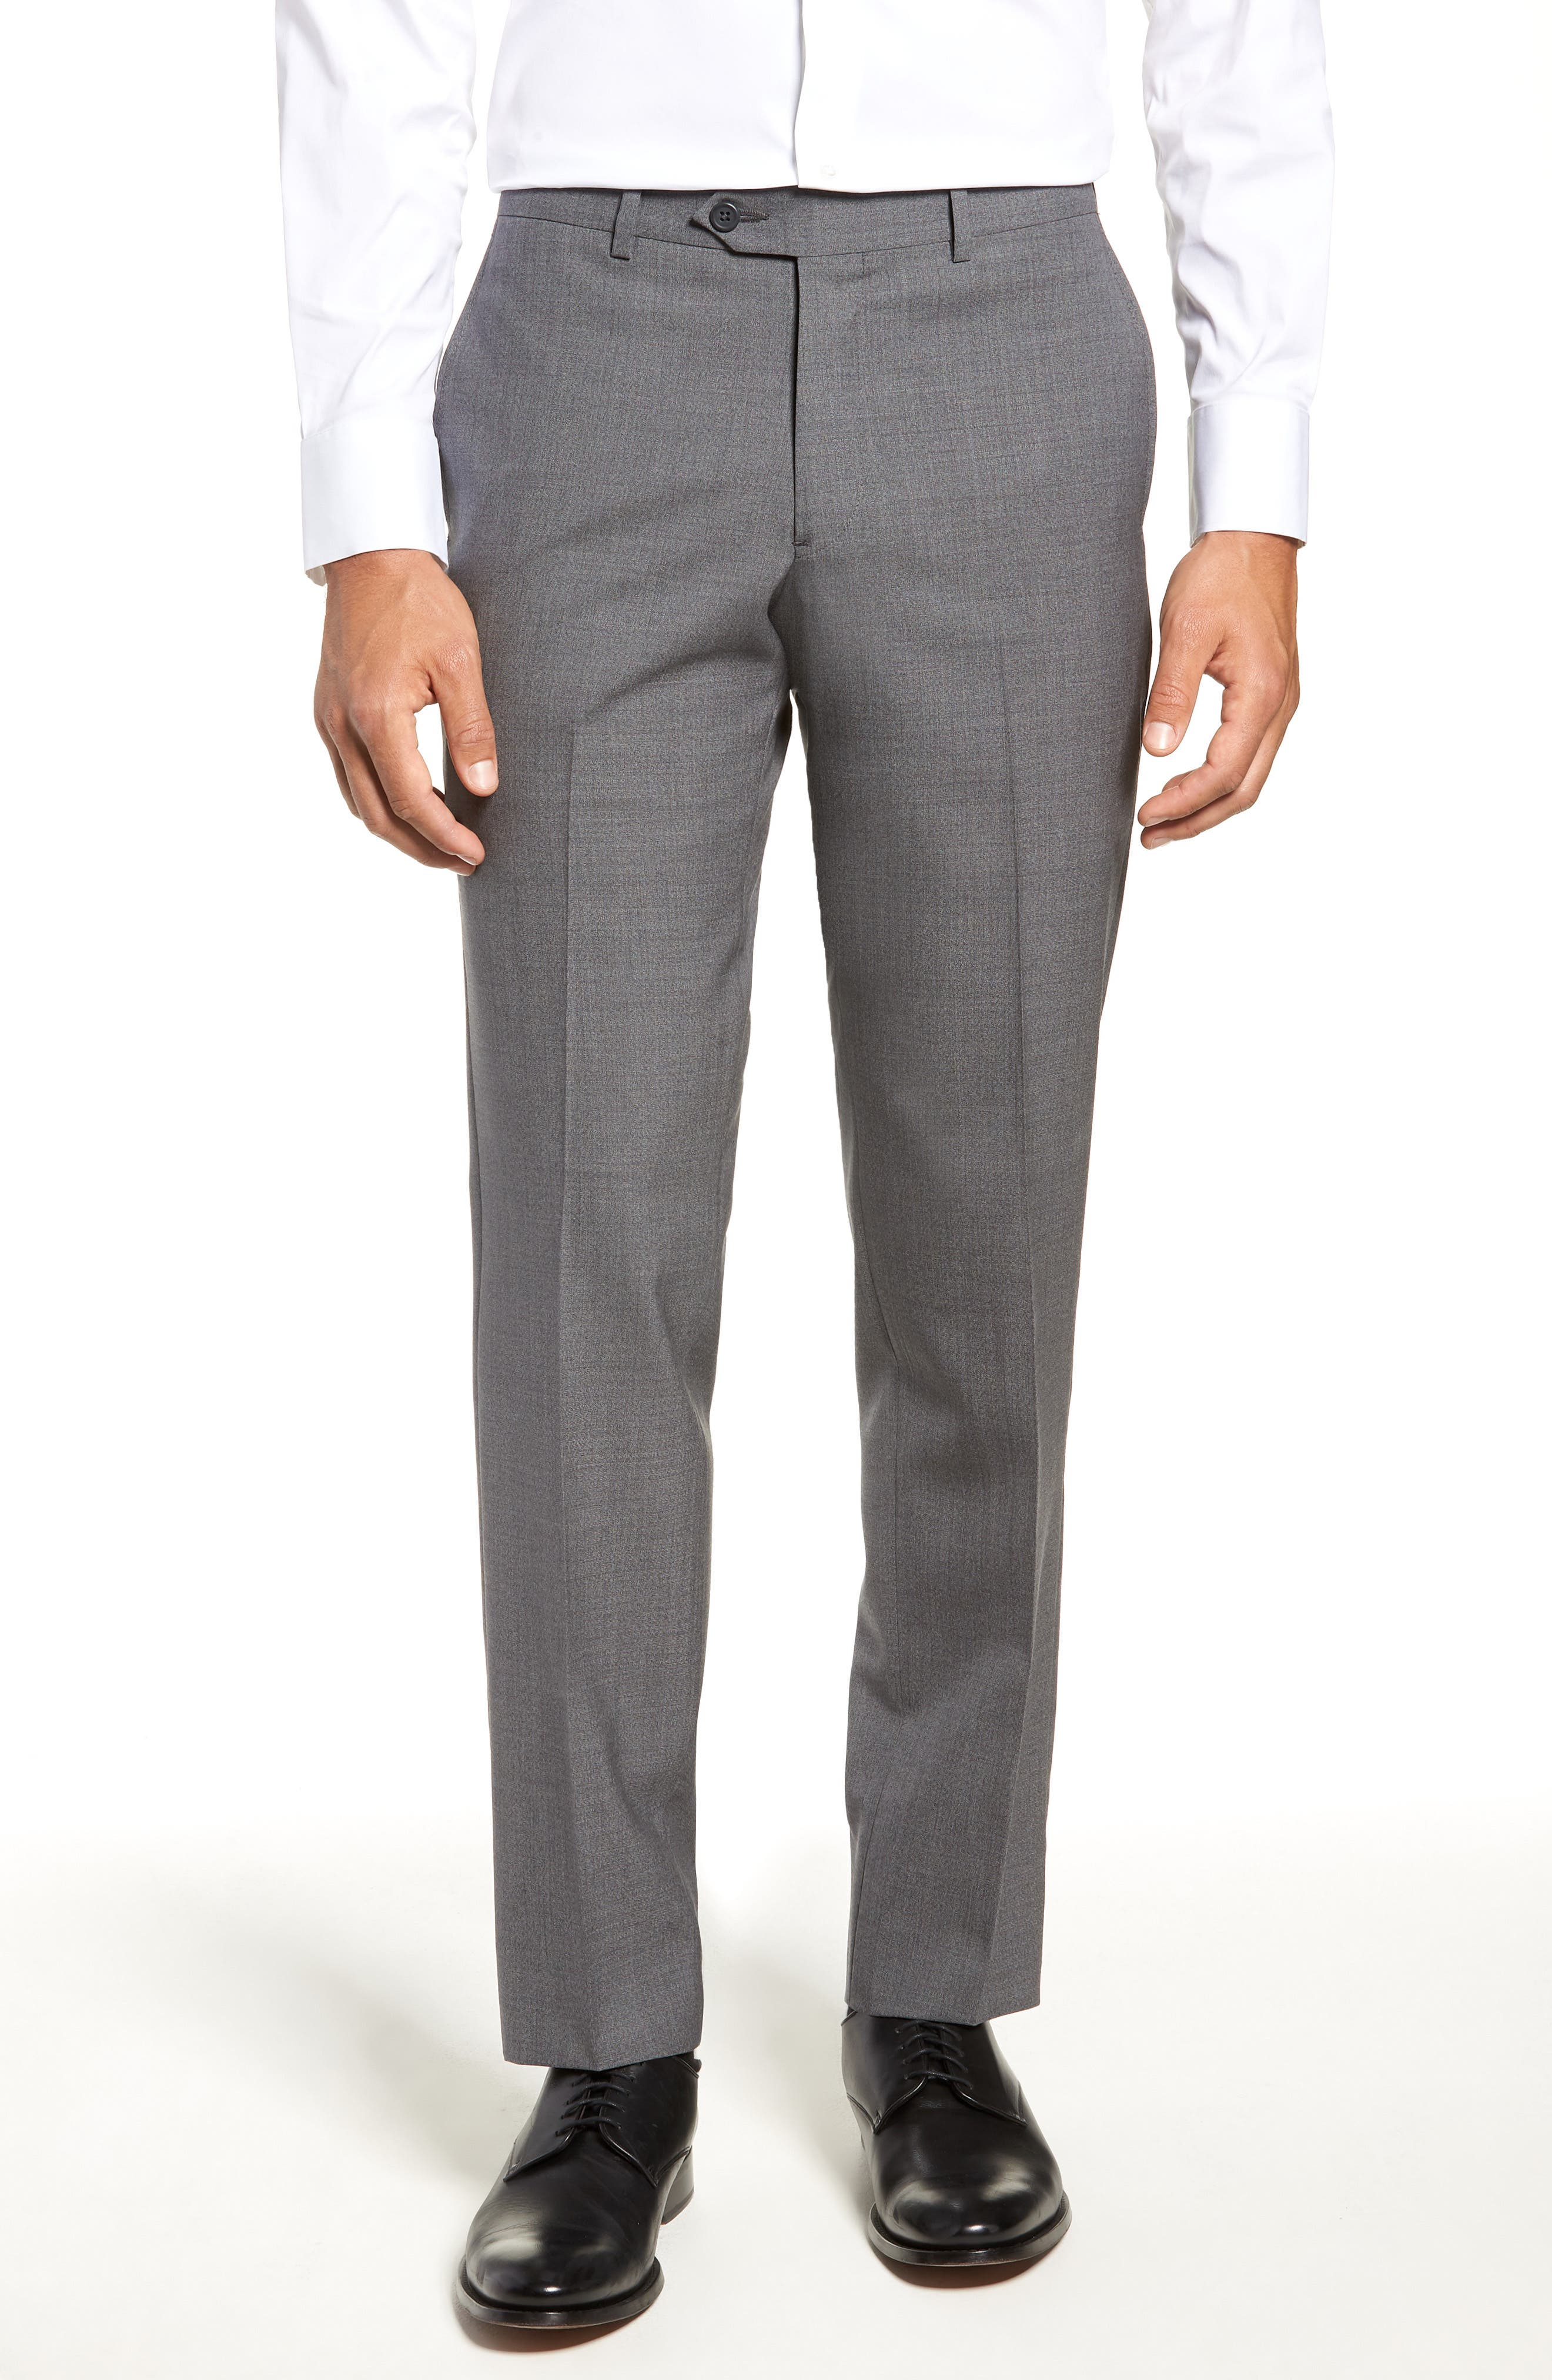 Trim Fit Flat Front Wool Trousers,                         Main,                         color, GREY